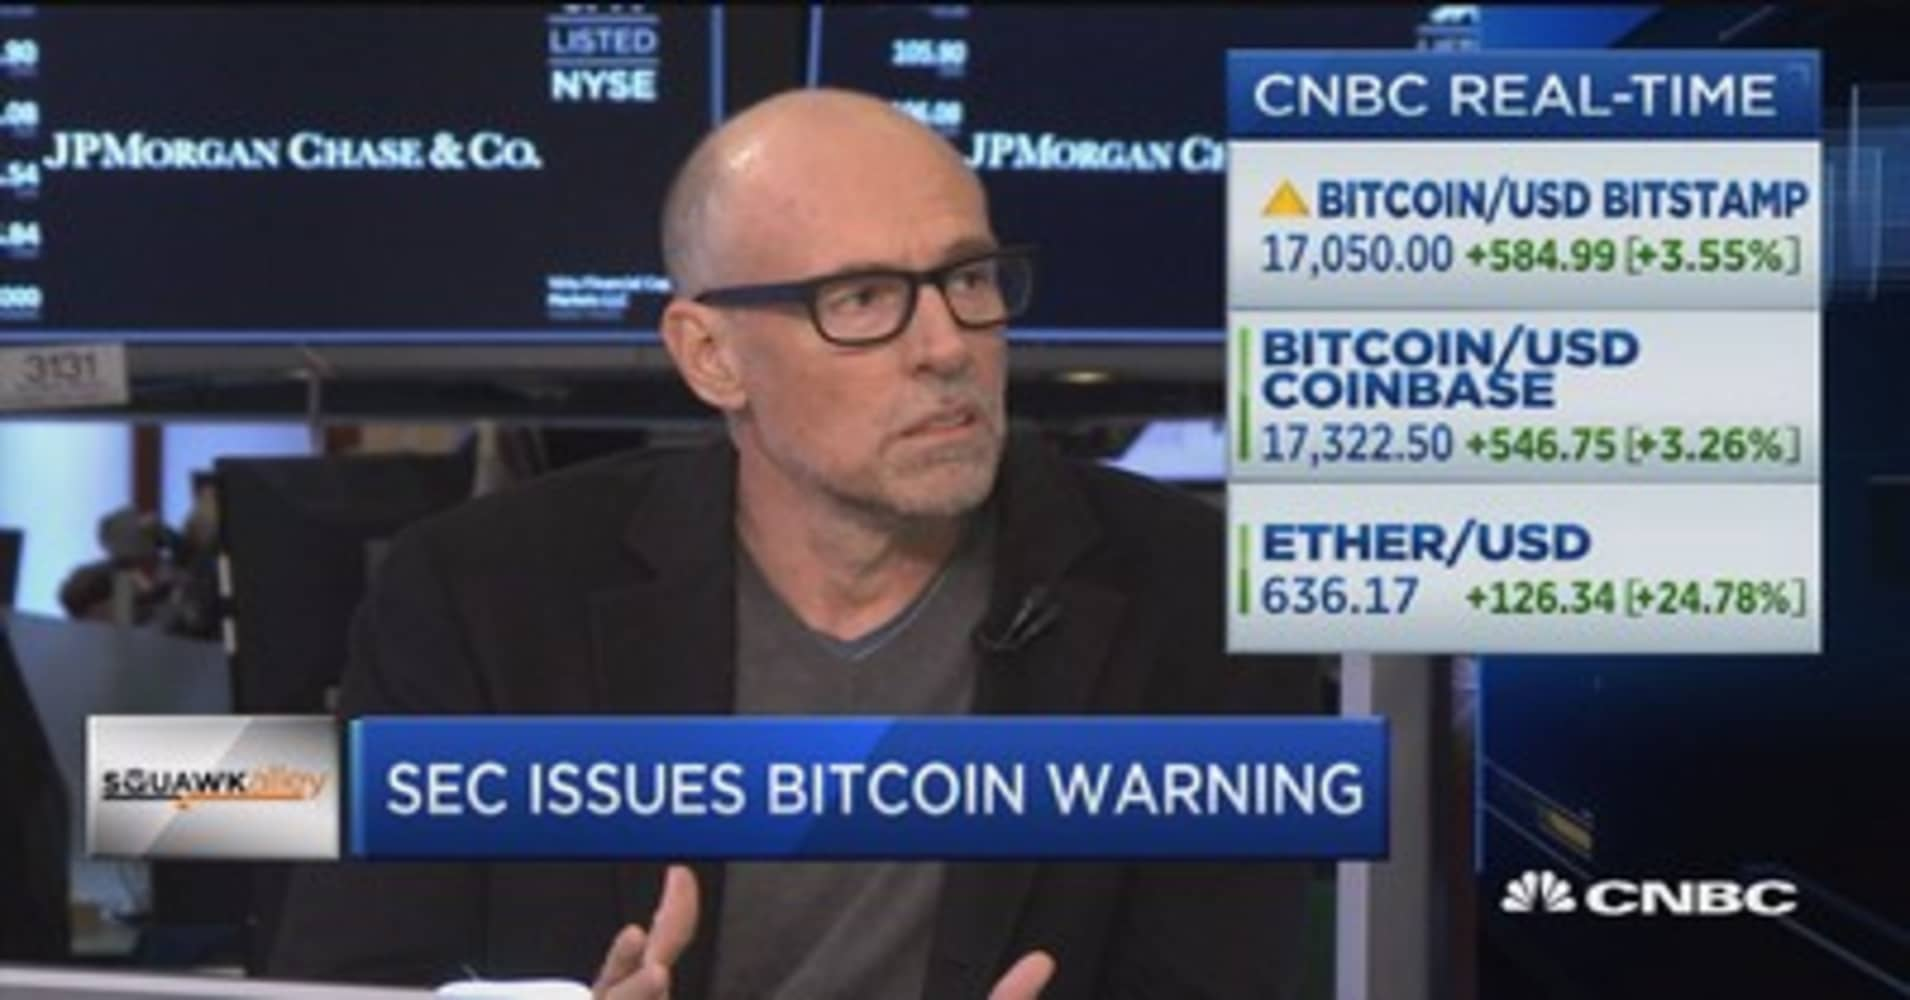 NYU's Scott Galloway on bitcoin: 'It's basically young people saying they have no faith in our institutions'